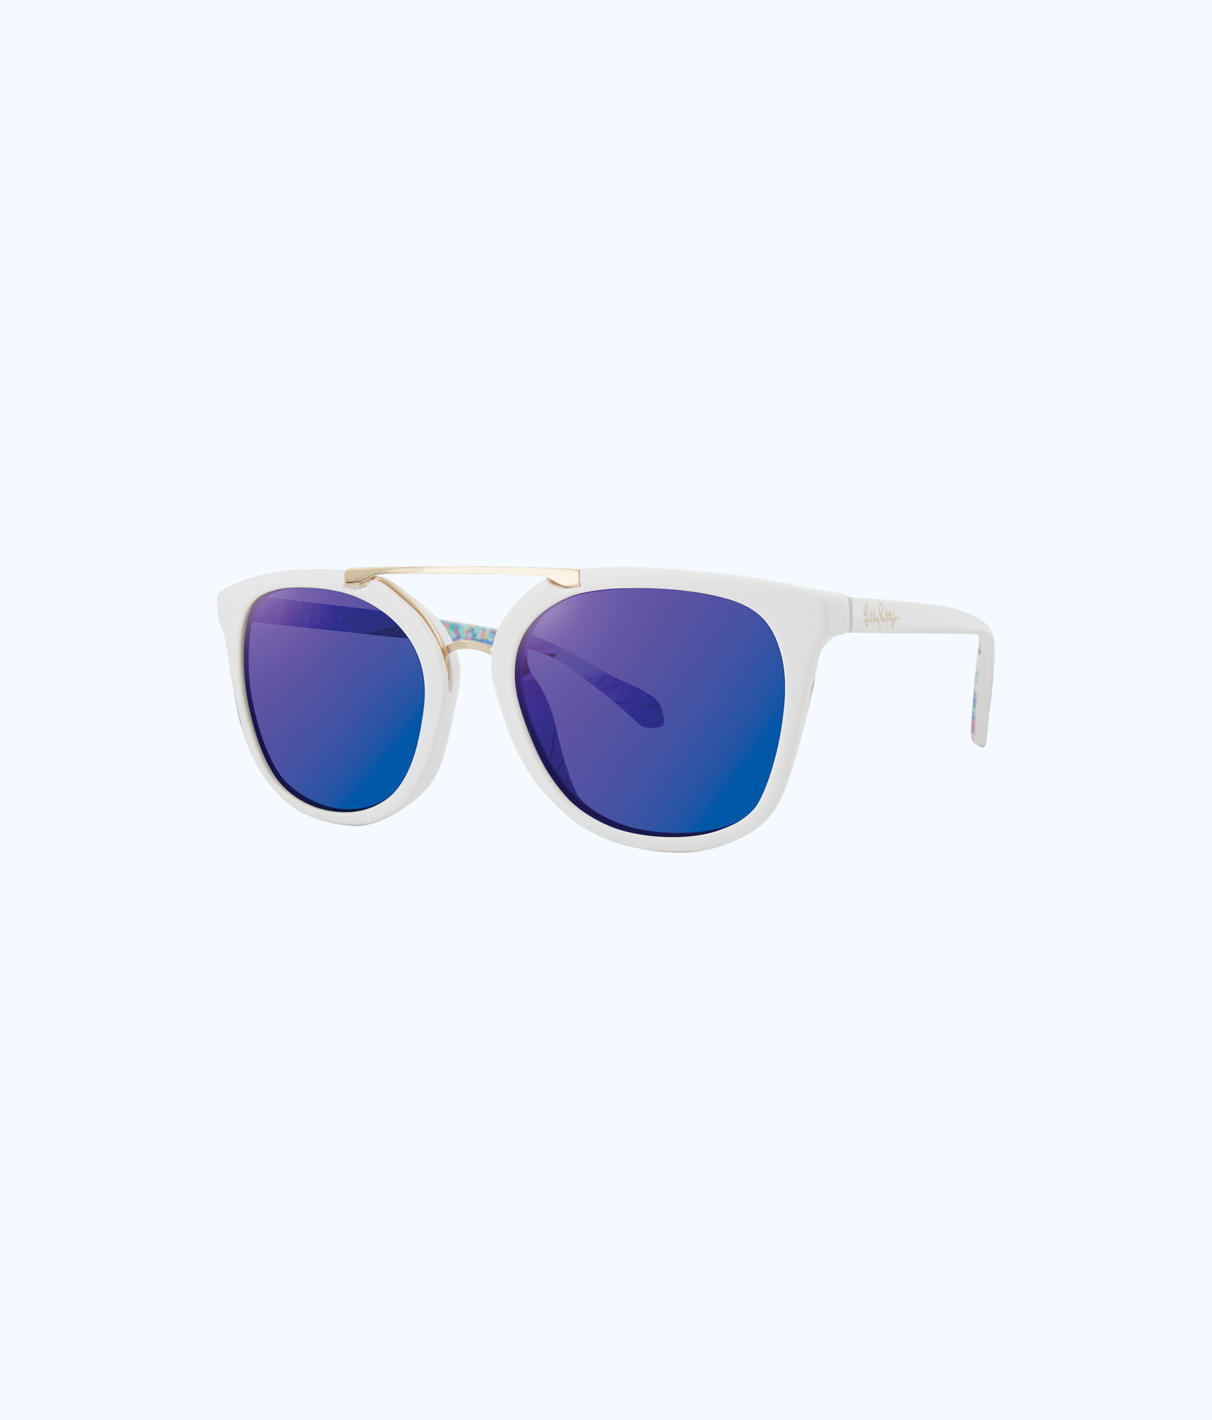 Lilly Pulitzer Lilly Pulitzer Emilia Sunglasses